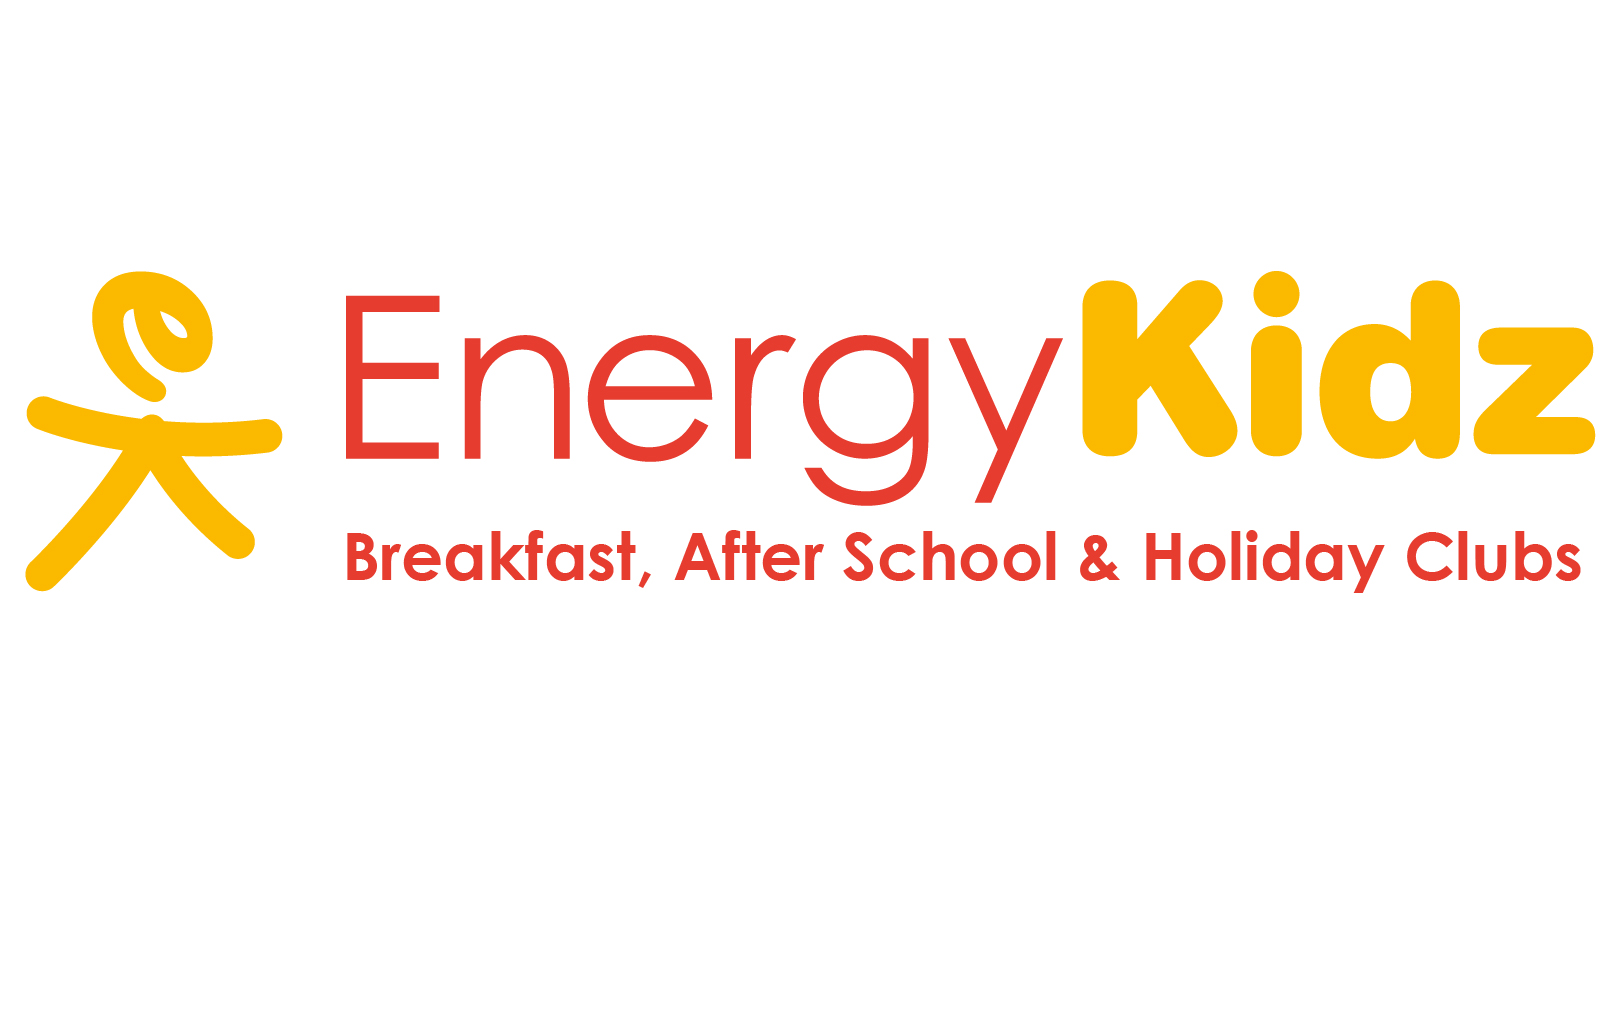 Energy Kidz Holiday Club arrives at Concordia Academy